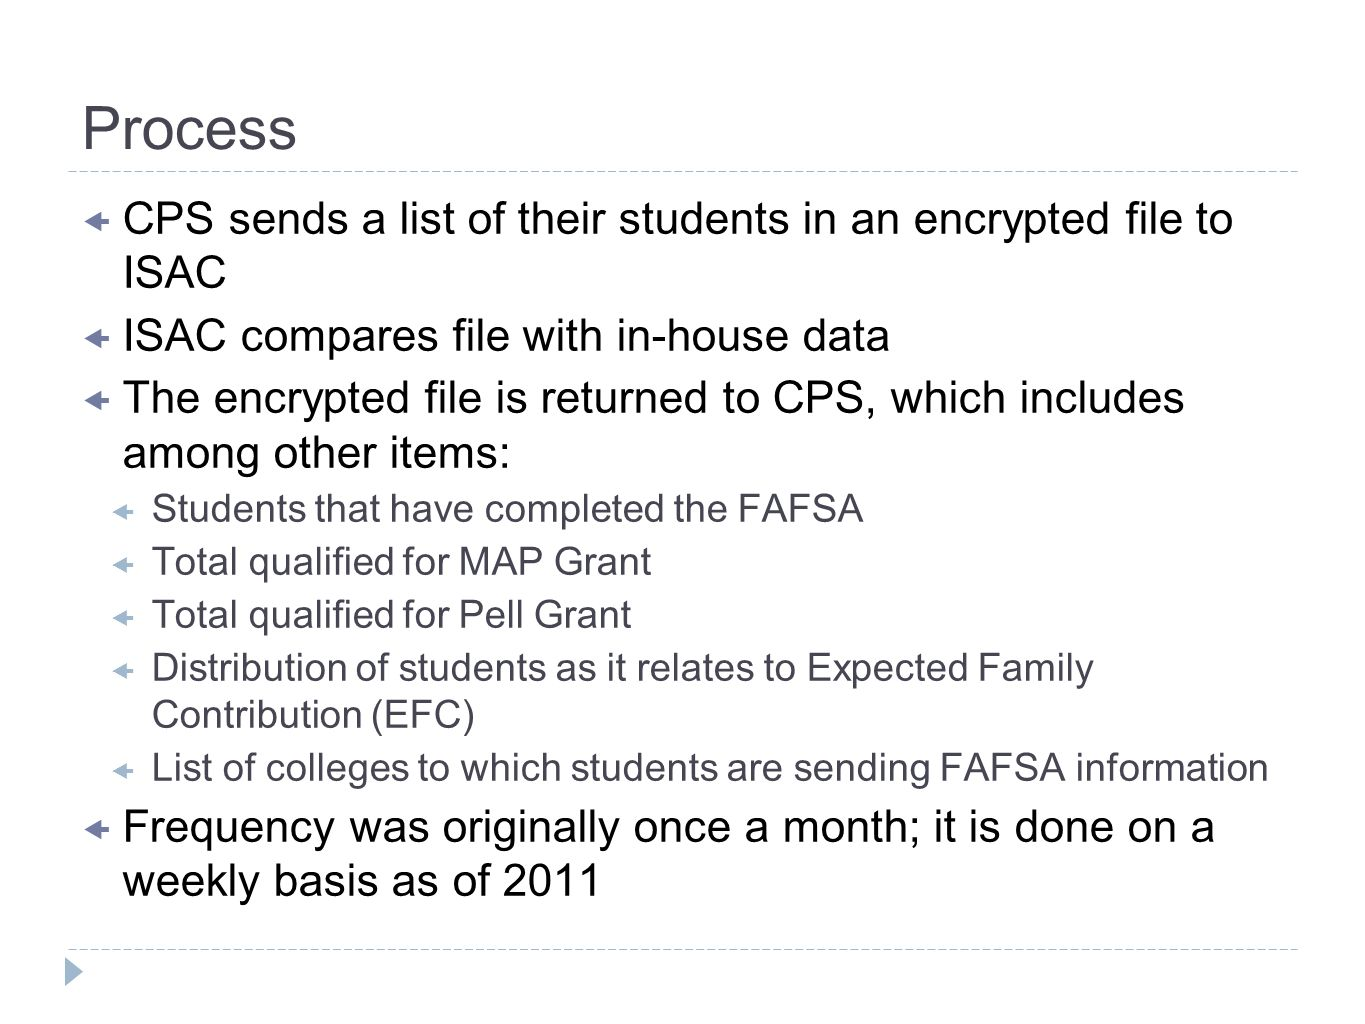 Process CPS sends a list of their students in an encrypted file to ISAC ISAC compares file with in-house data The encrypted file is returned to CPS, which includes among other items: Students that have completed the FAFSA Total qualified for MAP Grant Total qualified for Pell Grant Distribution of students as it relates to Expected Family Contribution (EFC) List of colleges to which students are sending FAFSA information Frequency was originally once a month; it is done on a weekly basis as of 2011